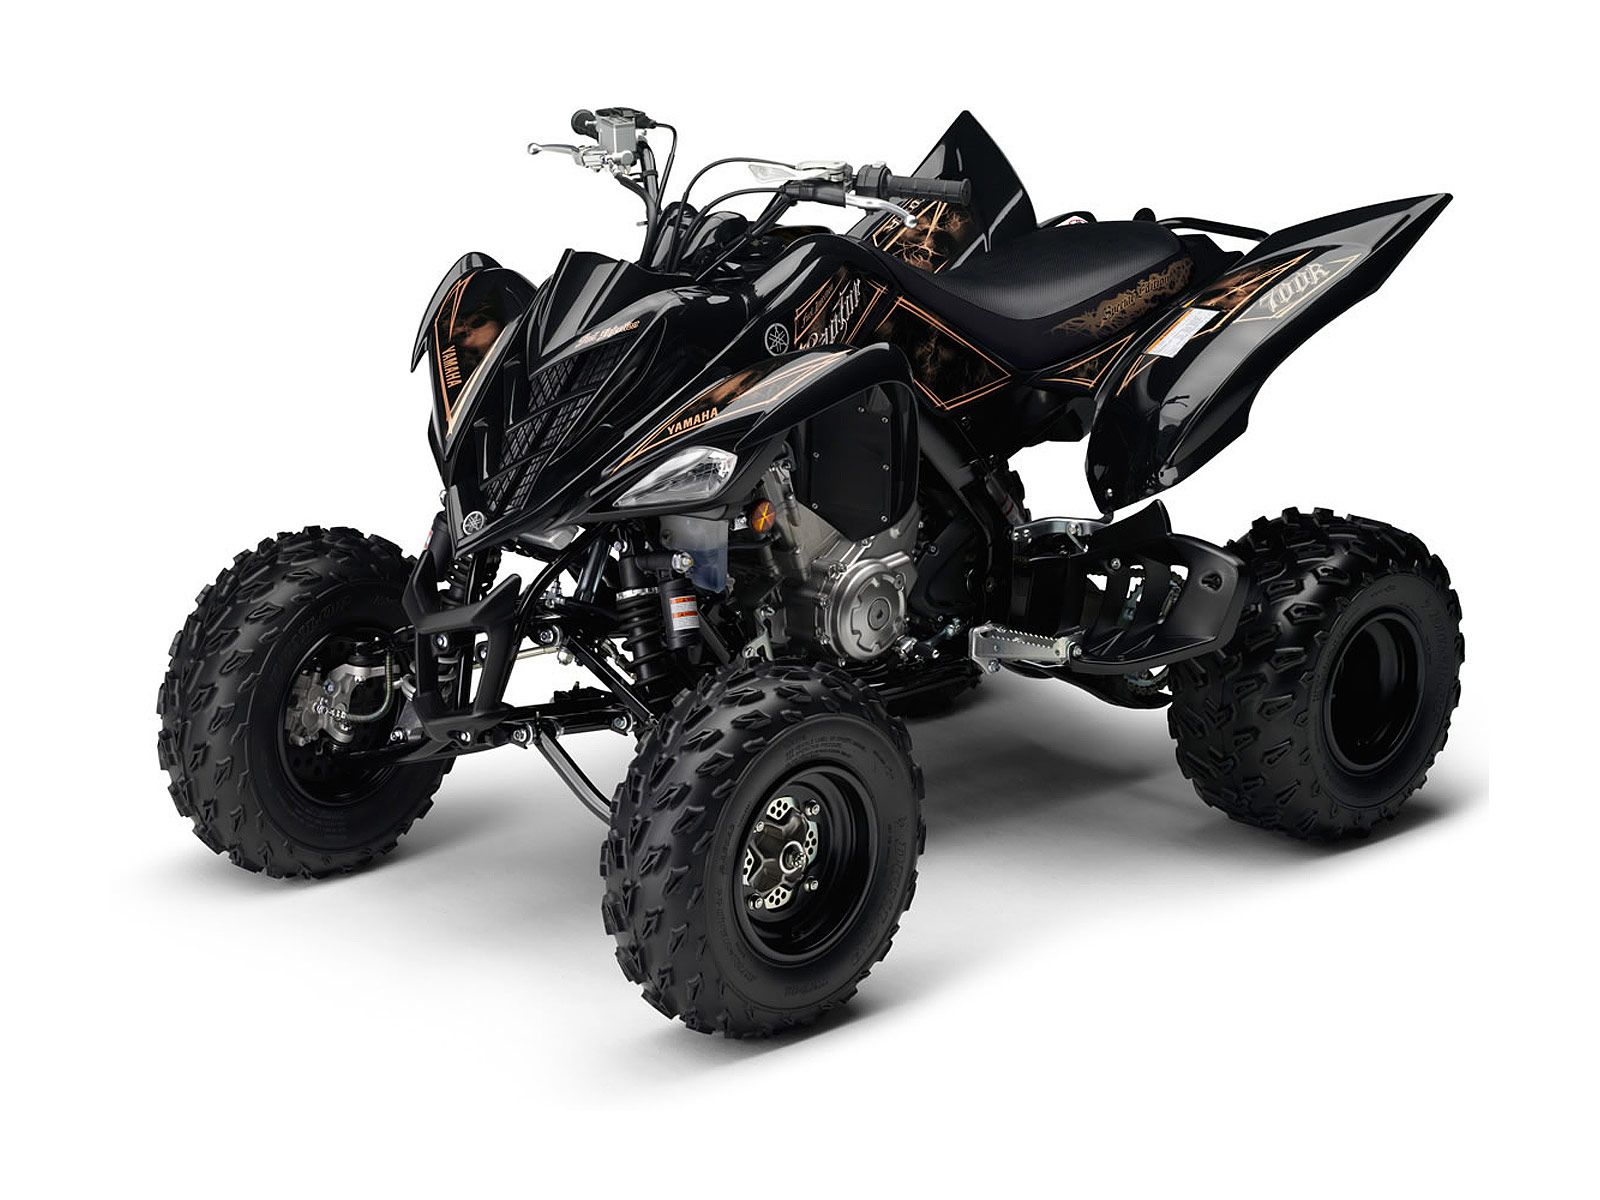 yamaha raptor 700r this is my favorite color scheme from the factory moto quad [ 1600 x 1200 Pixel ]